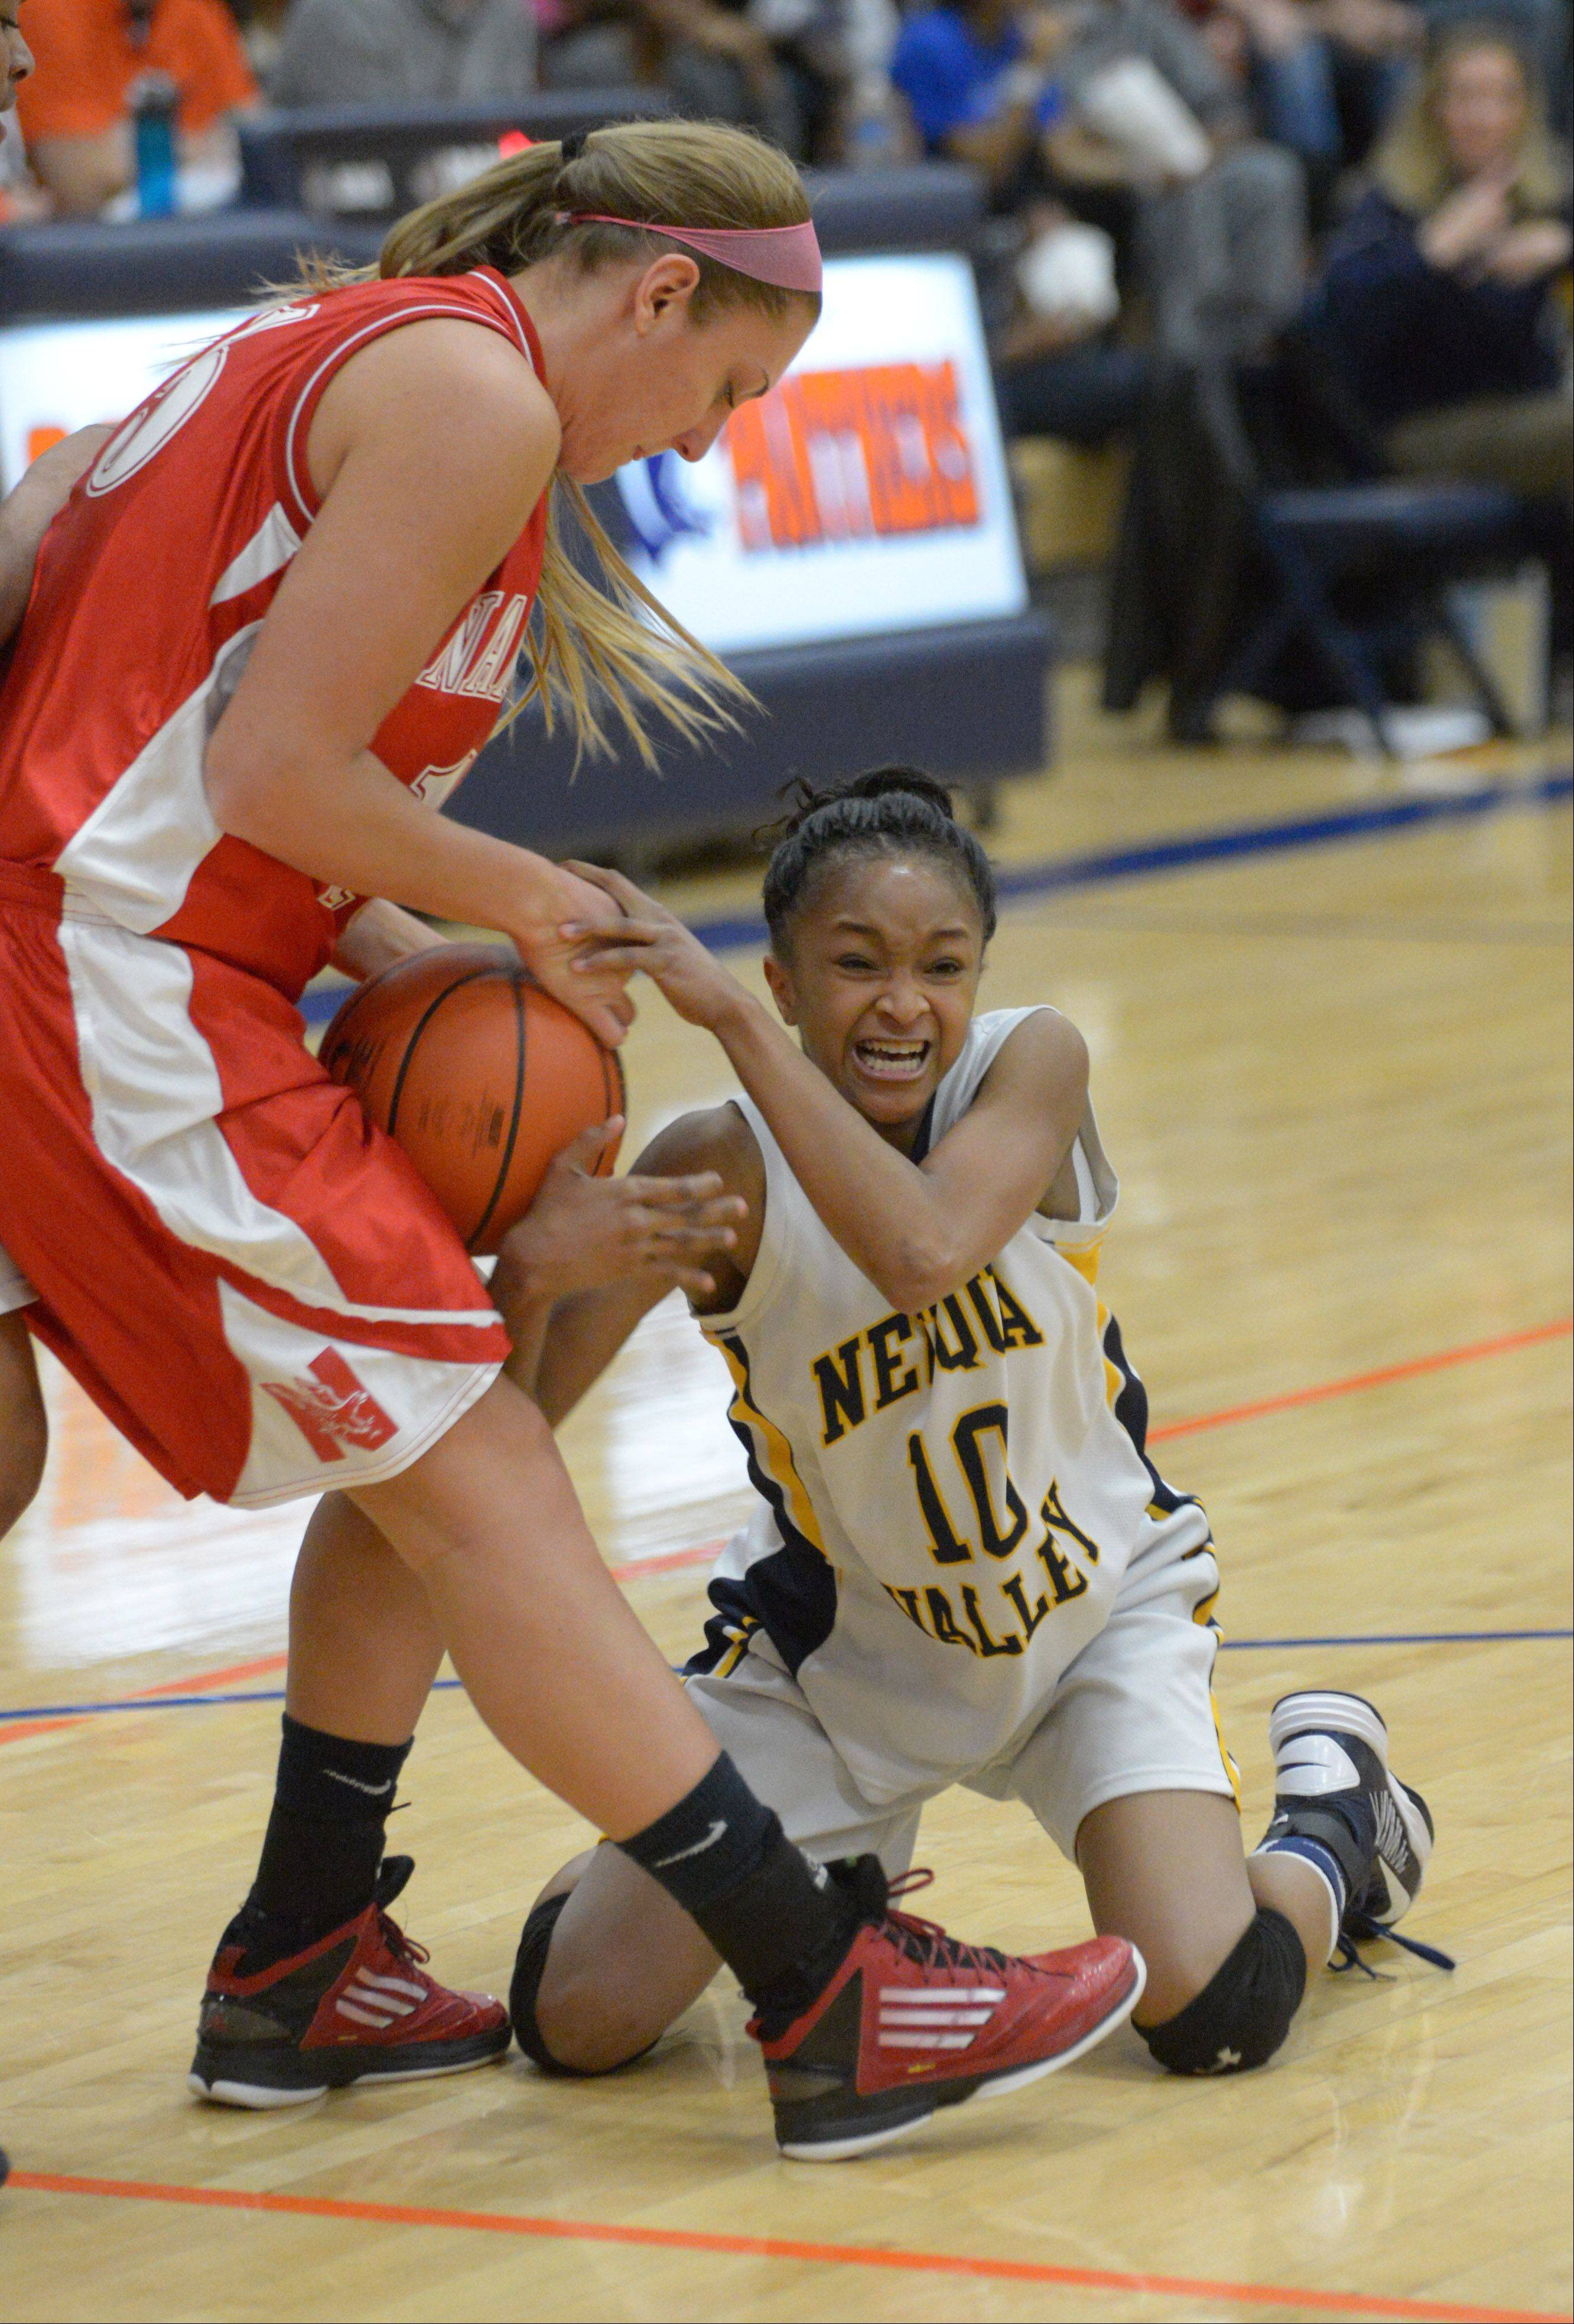 Laura Dierking,left, of Naperville Central and Myia Starks of Neuqua Valley fight for a loose ball.